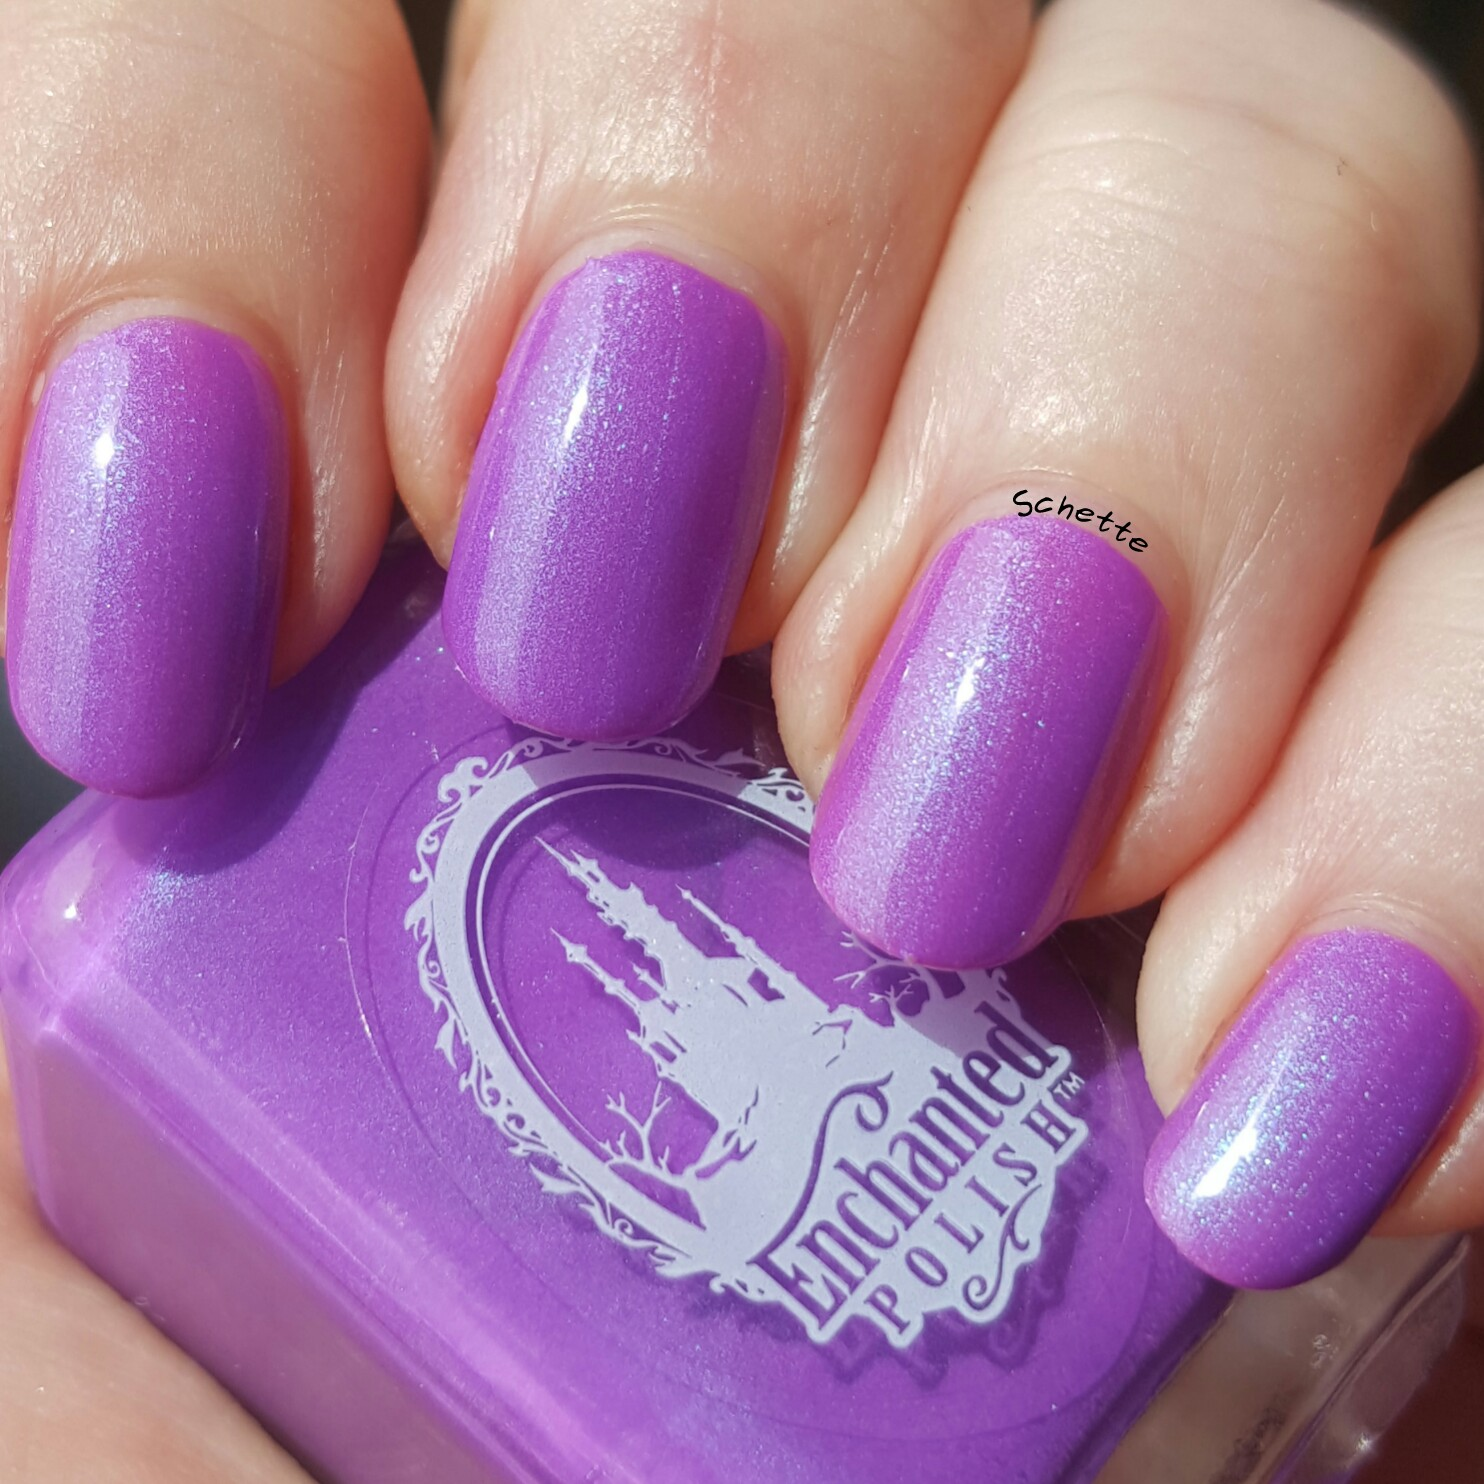 Enchanted polish : April 2016, May 2016